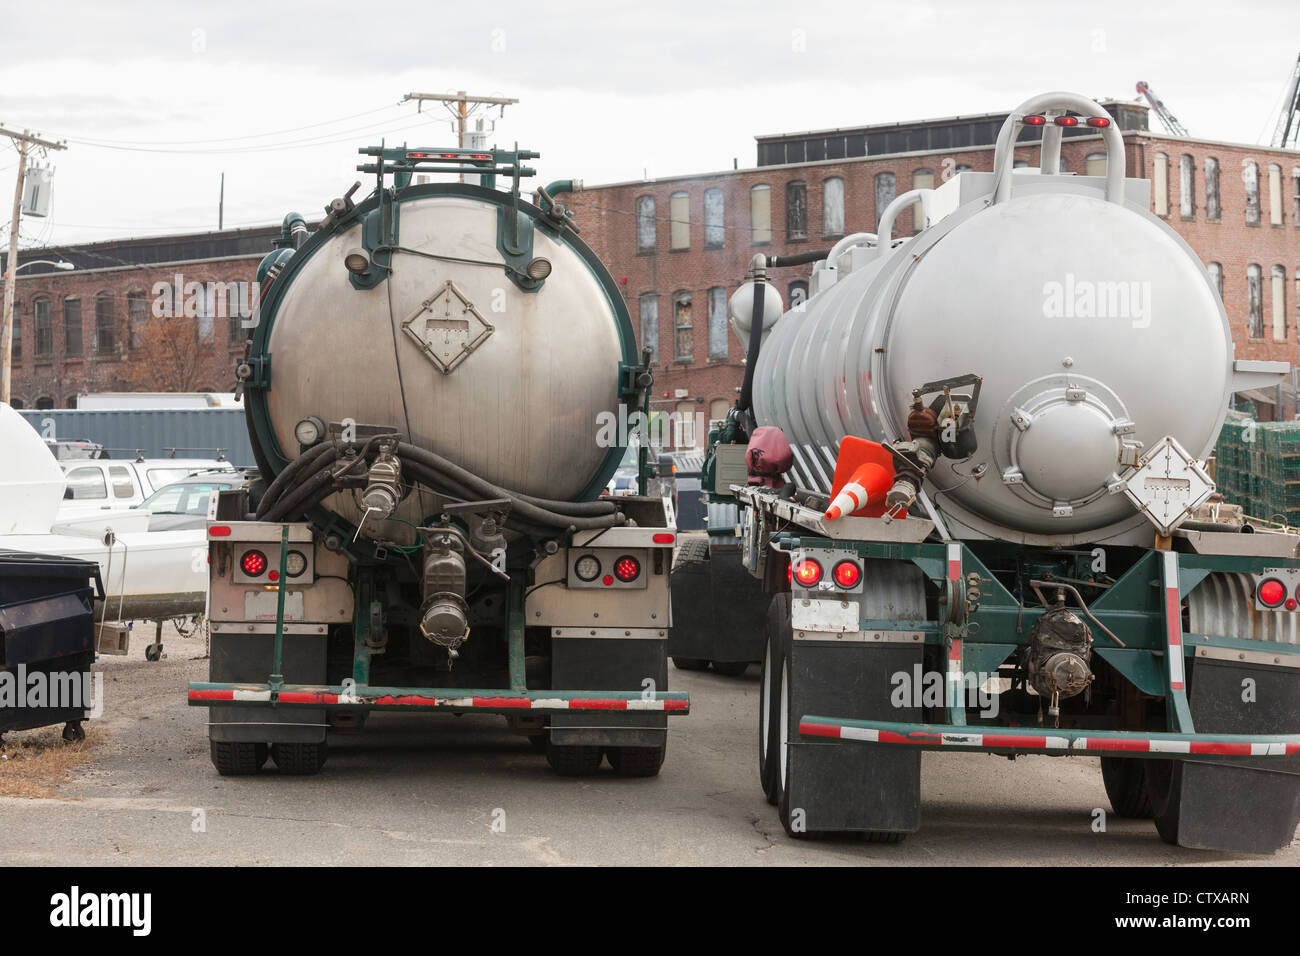 Two hazardous waste tanker trucks for picking up petroleum from ships in harbor - Stock Image